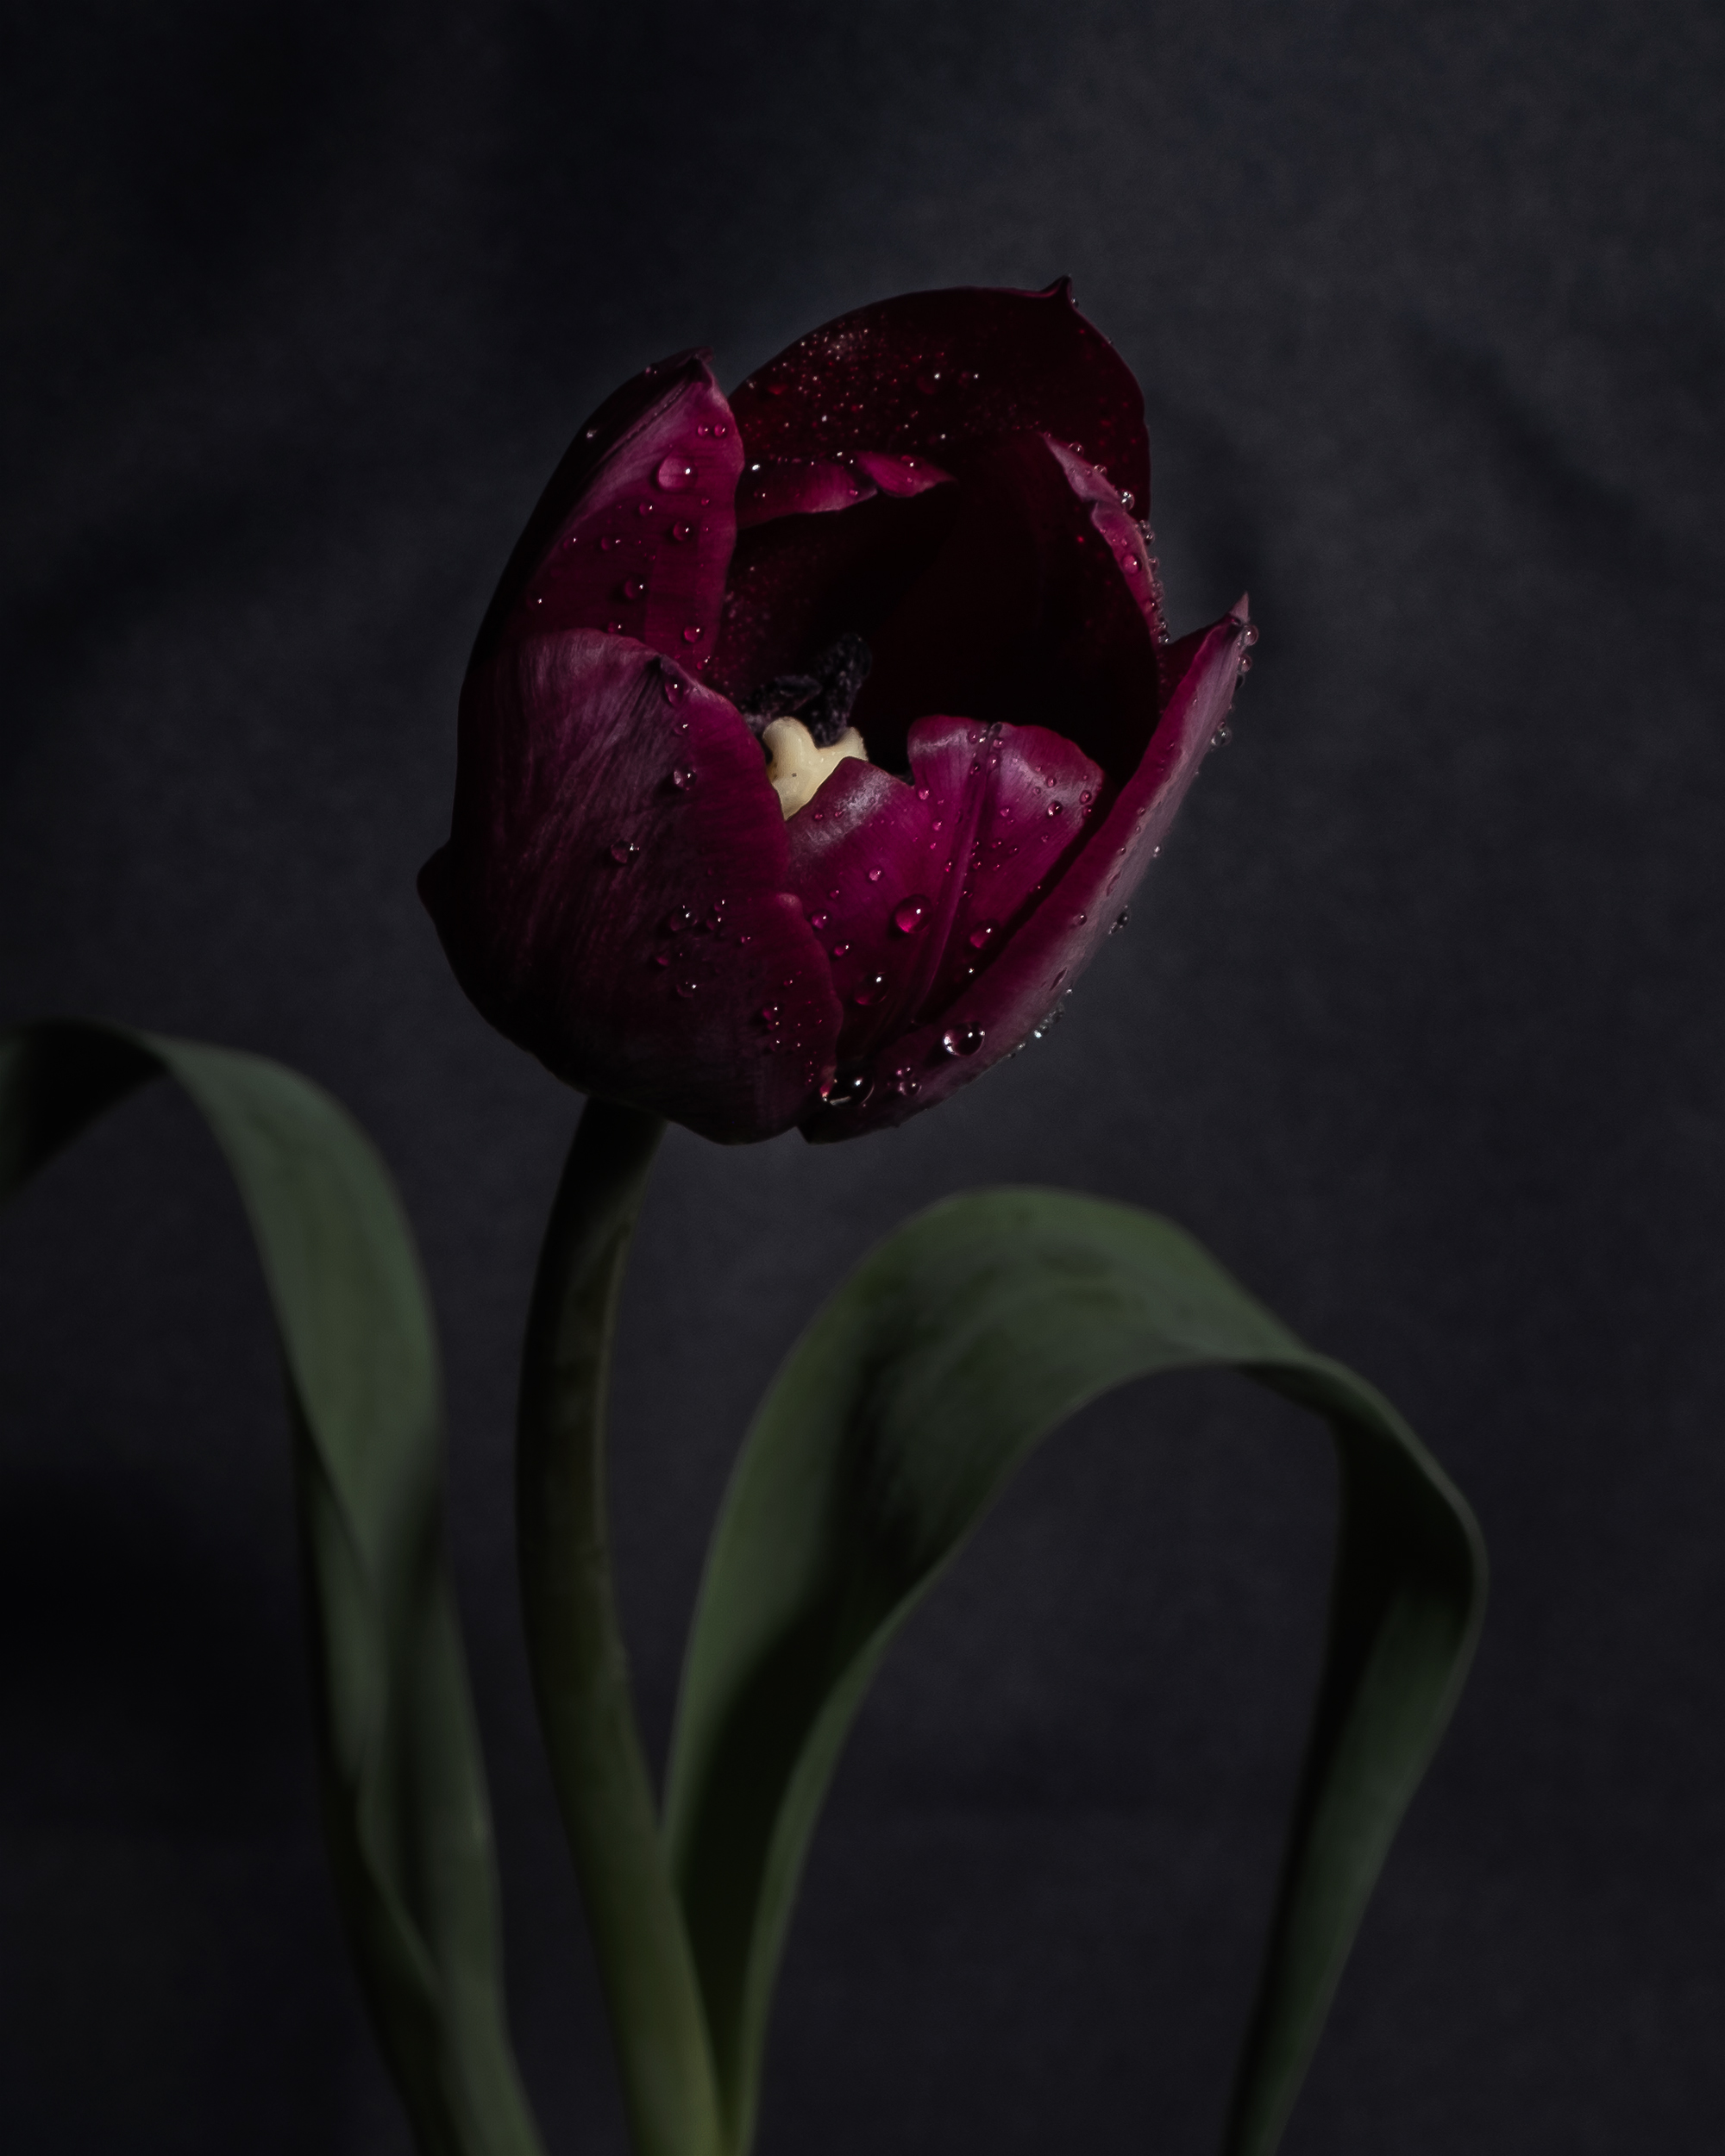 Paula Abrahao - Isolation Creation - Dark Tulip